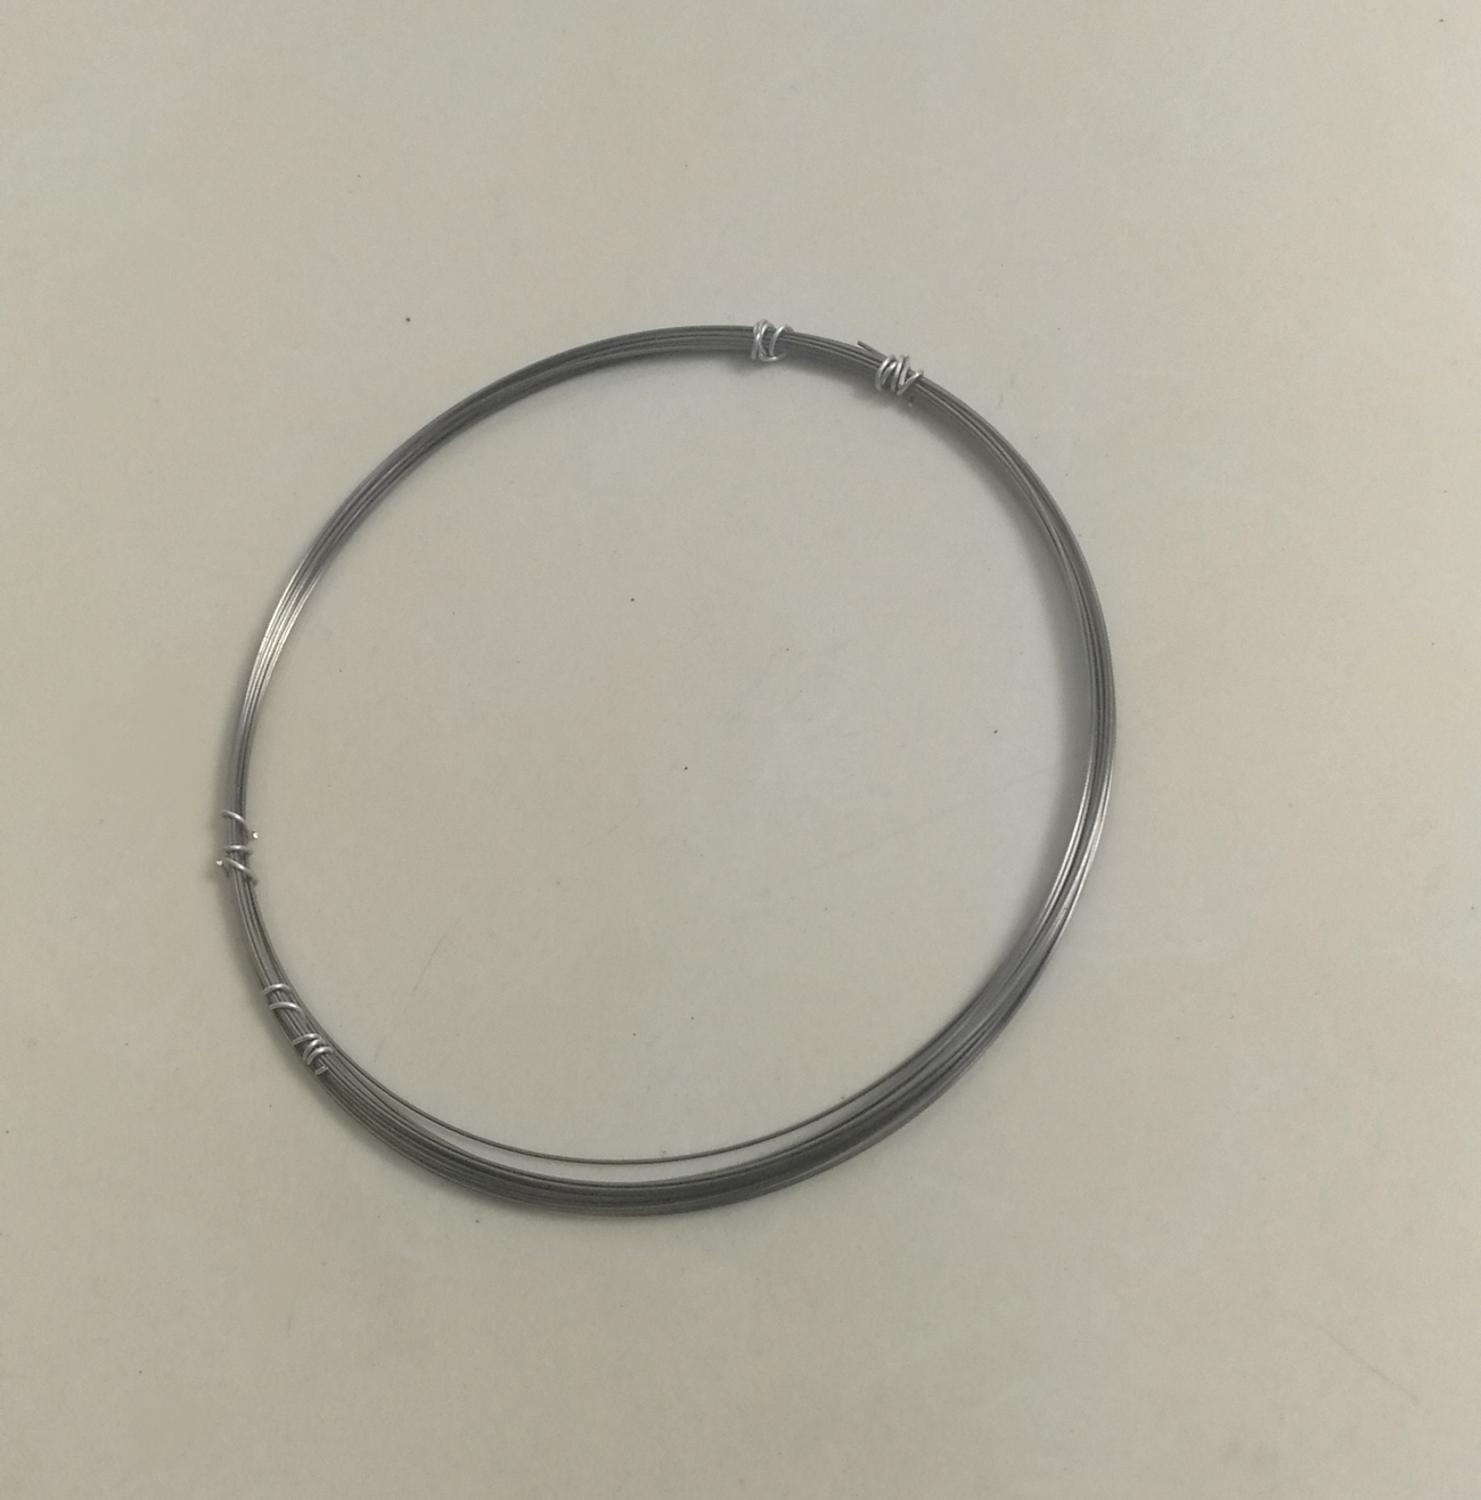 Image 2 - 0.5mm Diameter High Purity Industry Experiment DIY Bright Tungsten Wire Vacuum Heating W Material, about 5 meters-in Welding Wires from Tools